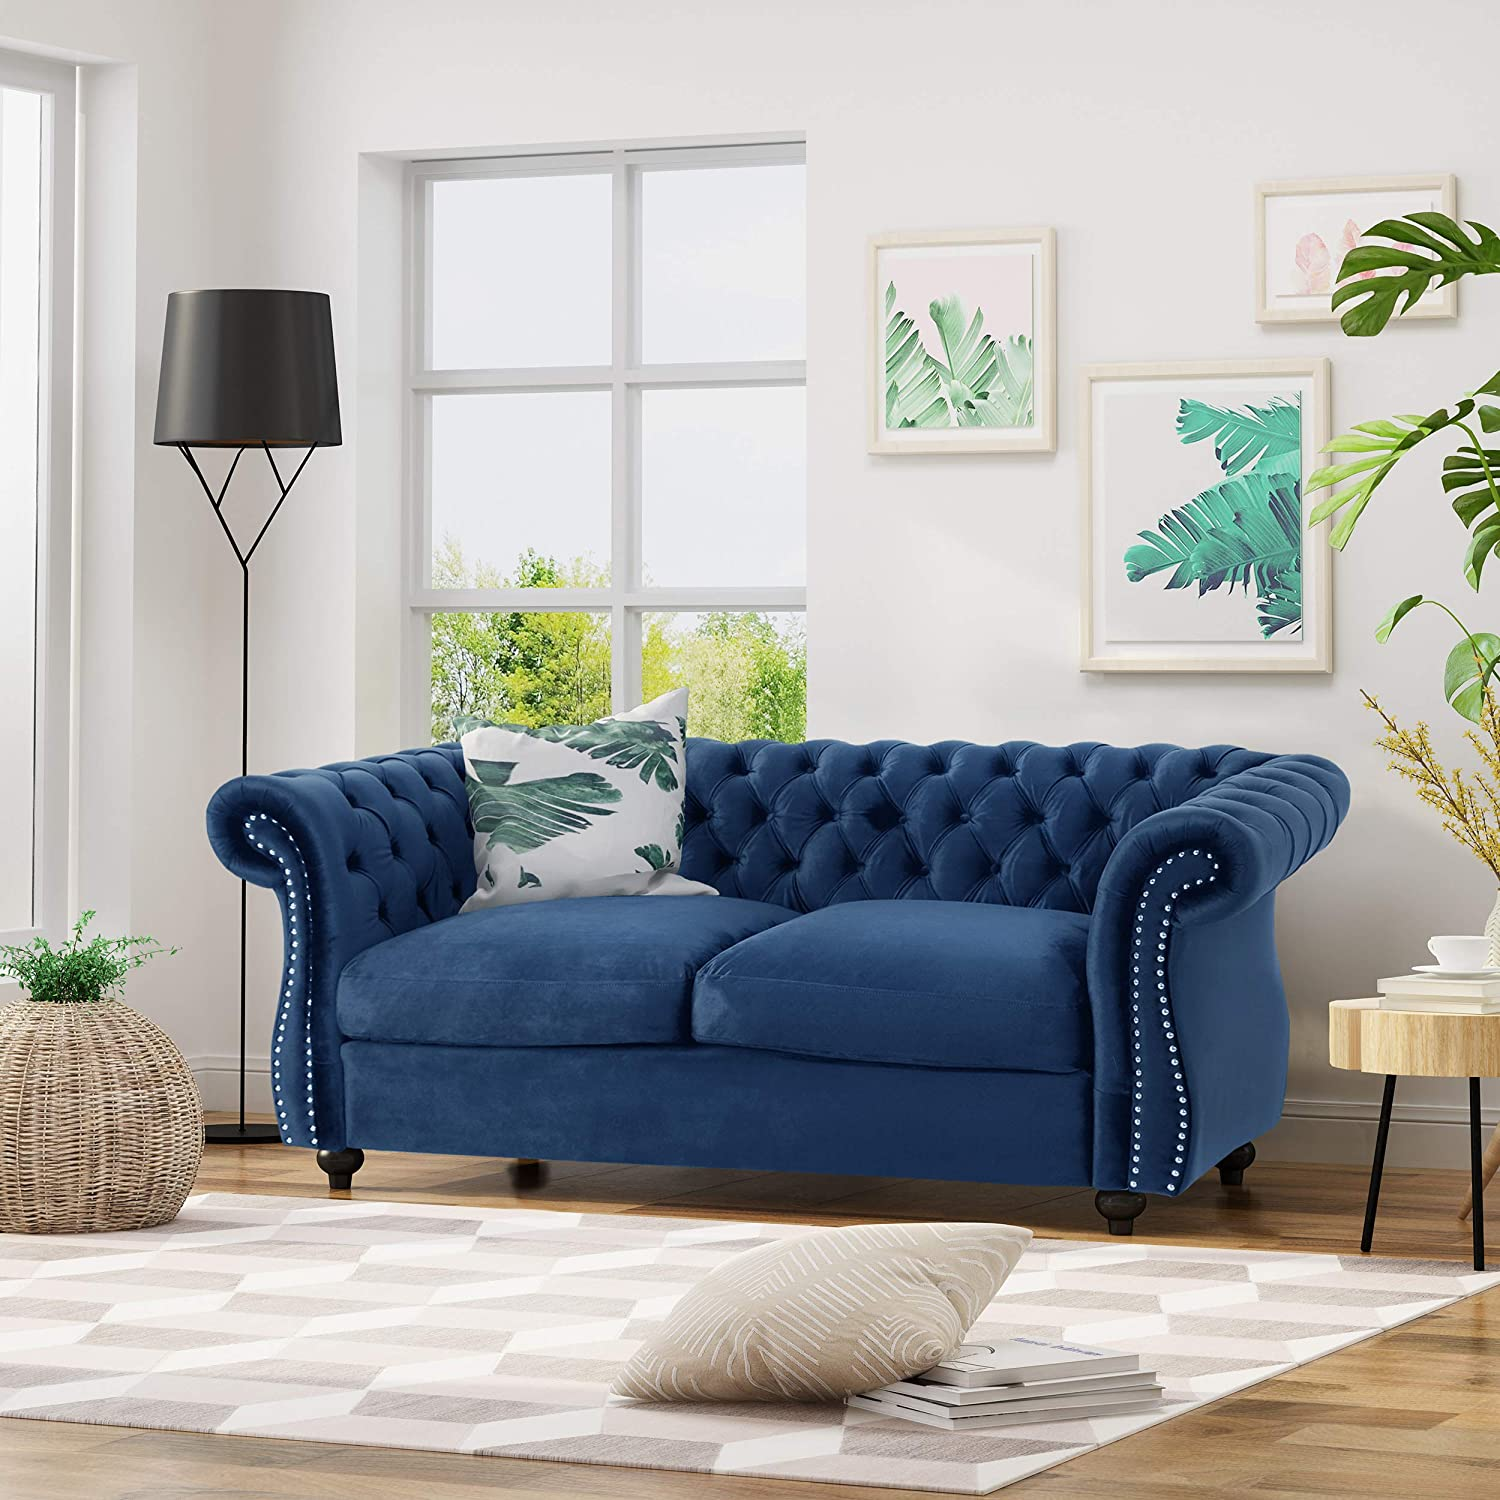 Blue living Room Sofa Sale – Ease Bedding with Style